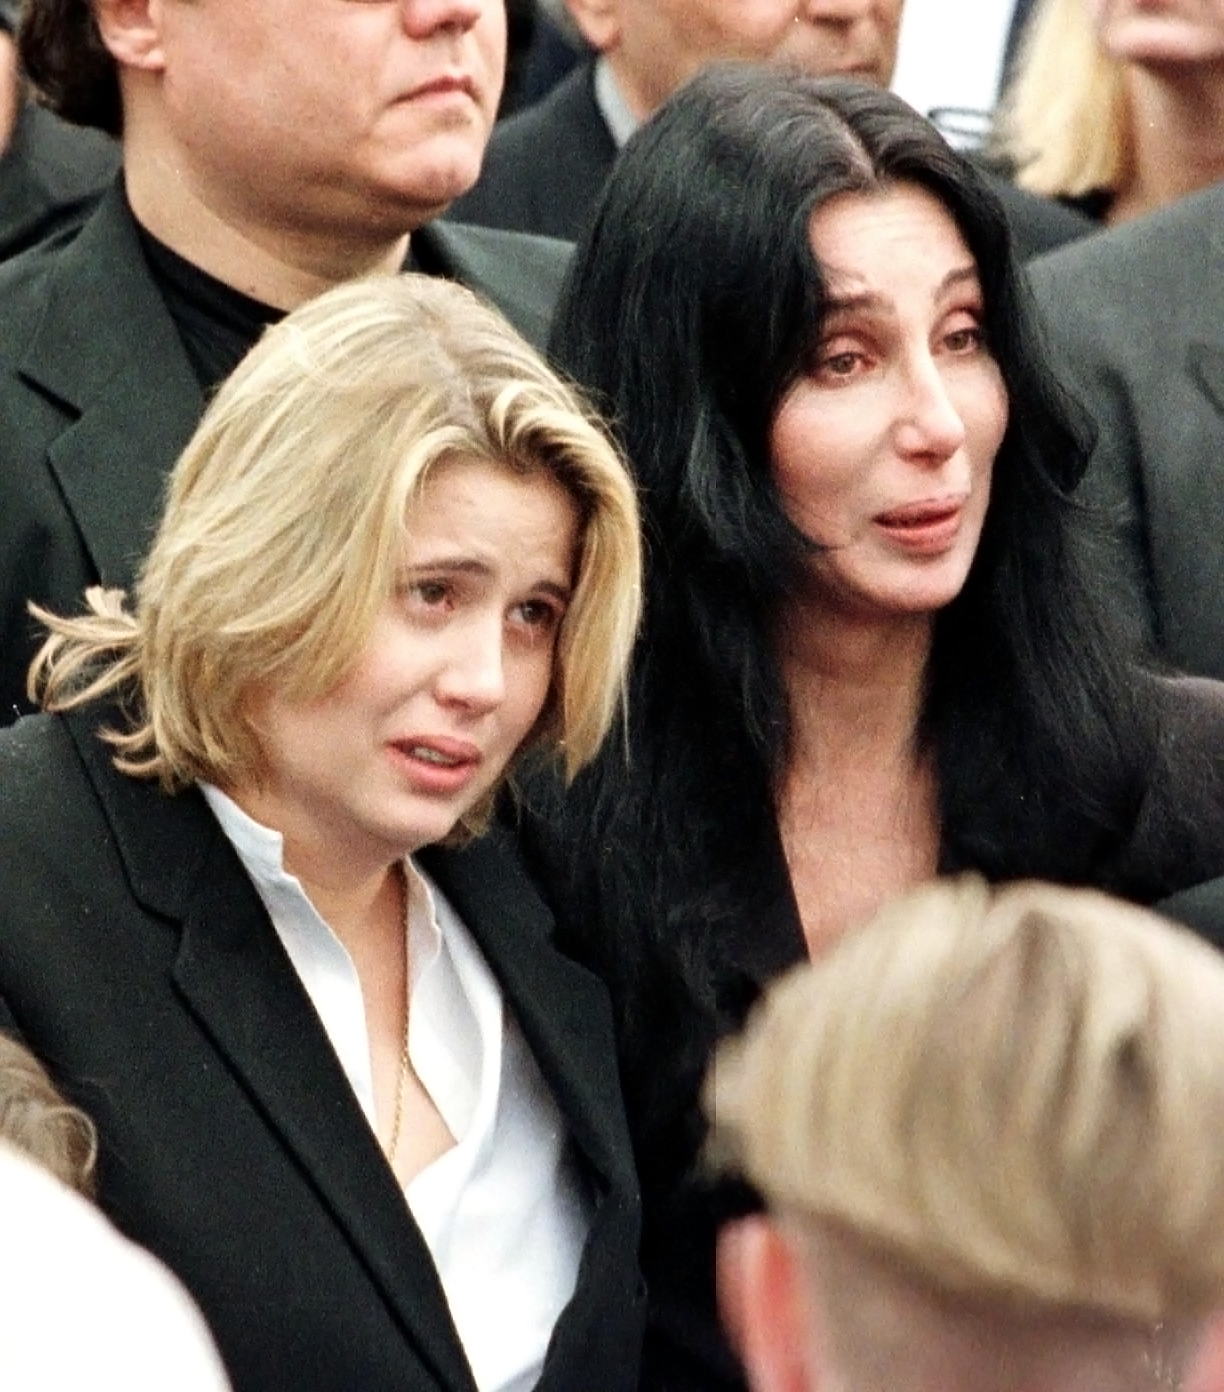 Cher Through The Years - Sonny died when he crashed into a tree while skiing at Heavenly Mountain Resort in California. Cher delivered an emotional eulogy at his funeral.